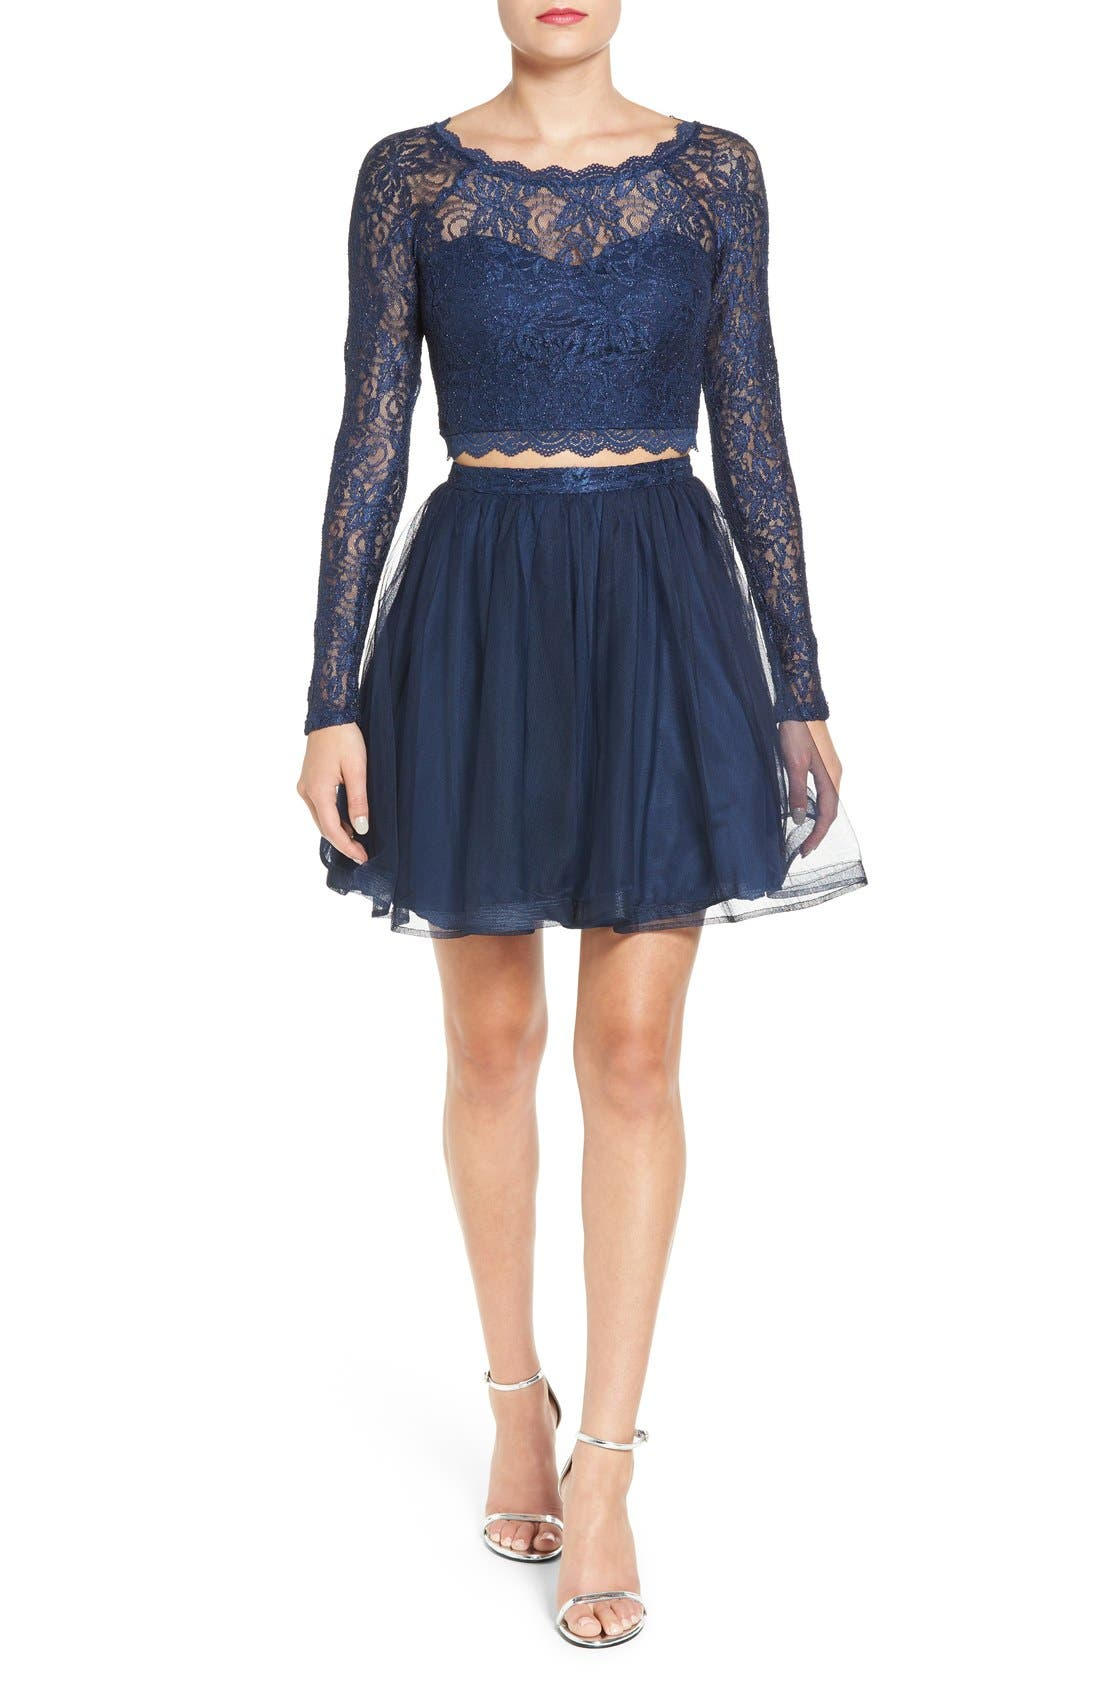 Alternate Image 1 Selected - Sequin Hearts Long Sleeve Lace Two-Piece Skater Dress